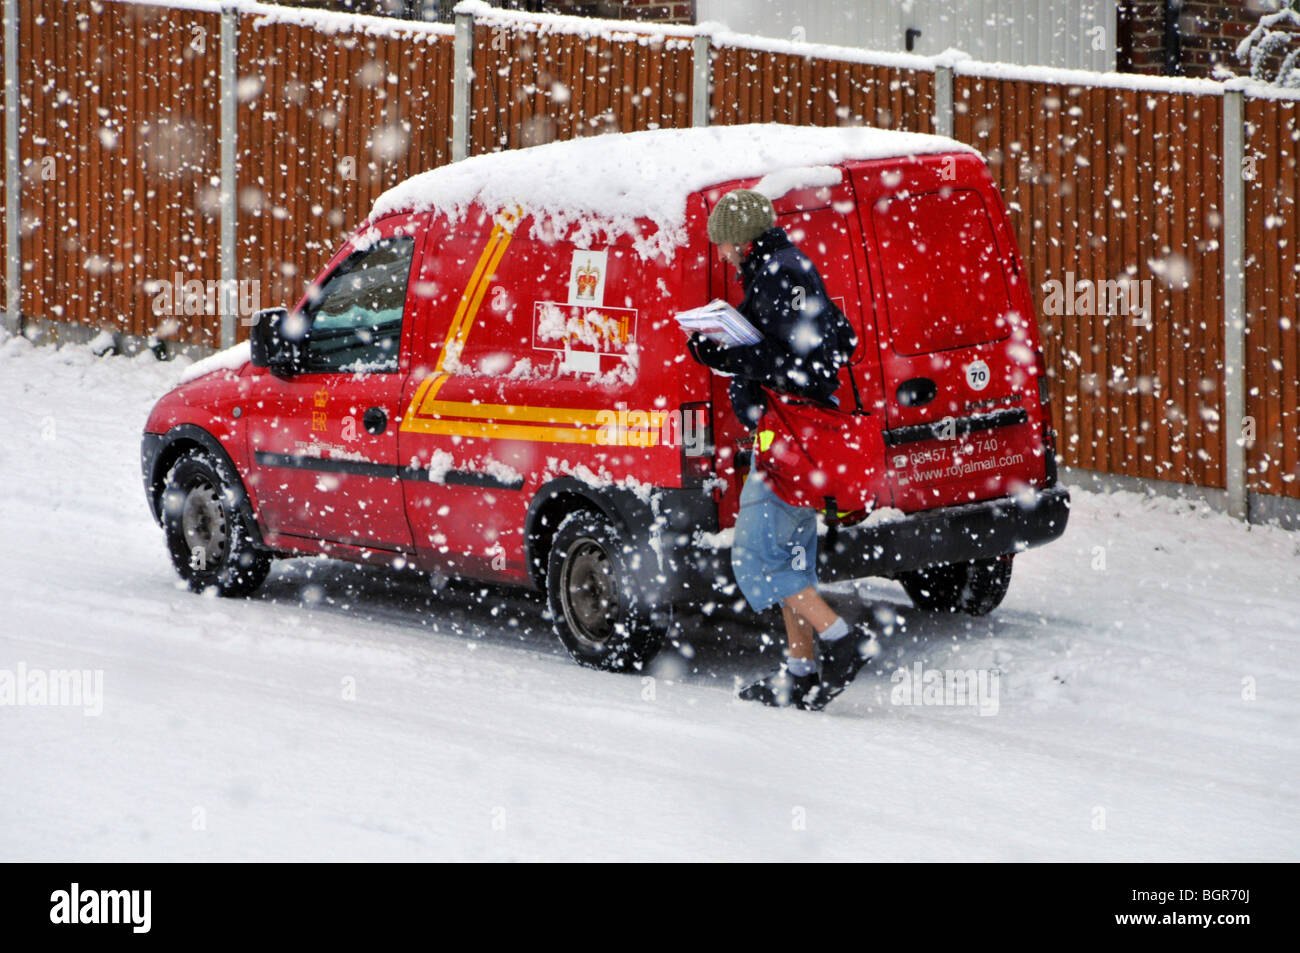 Royal Mail delivery van and postman walking residential street during snow storm (number plate obscured) Brentwood - Stock Image